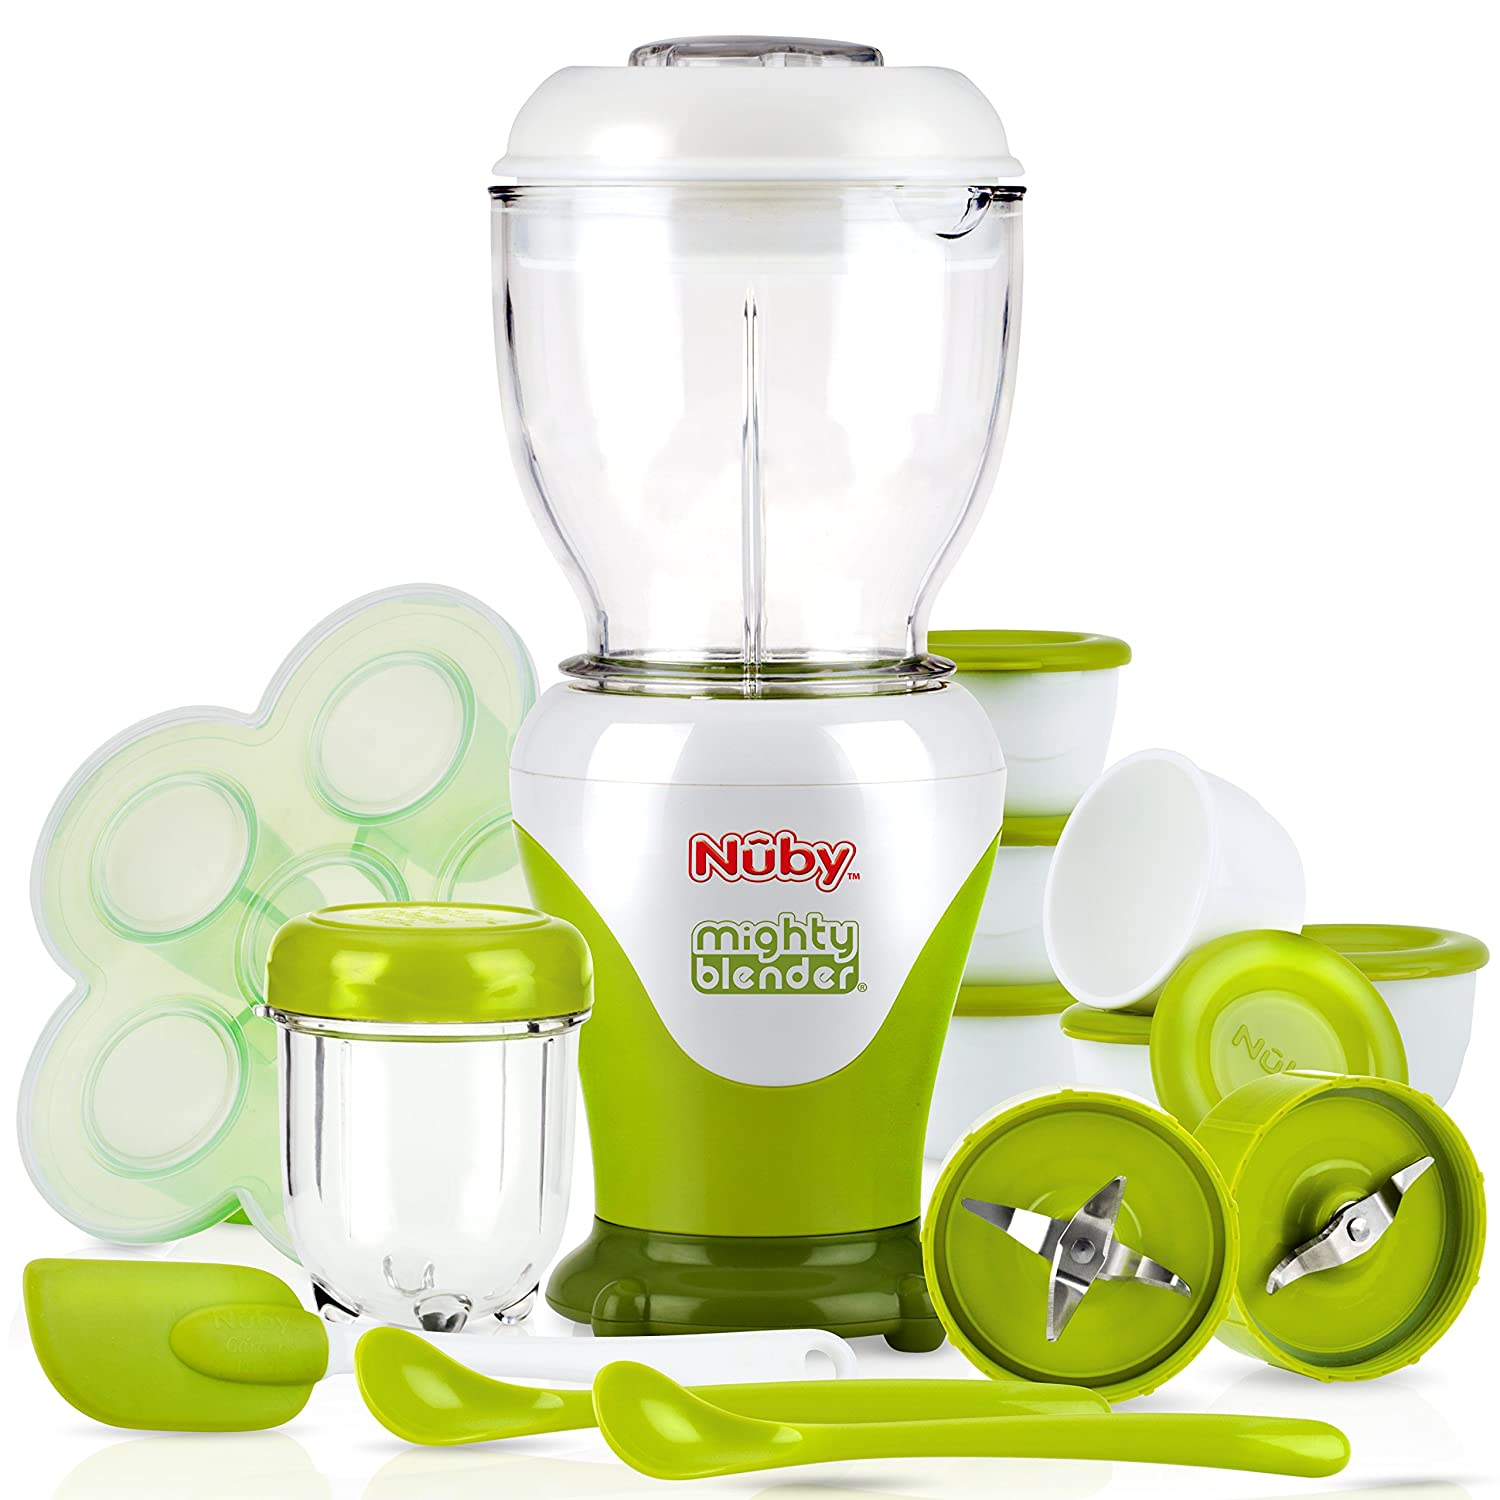 How to choose the best blender for pureeing baby food